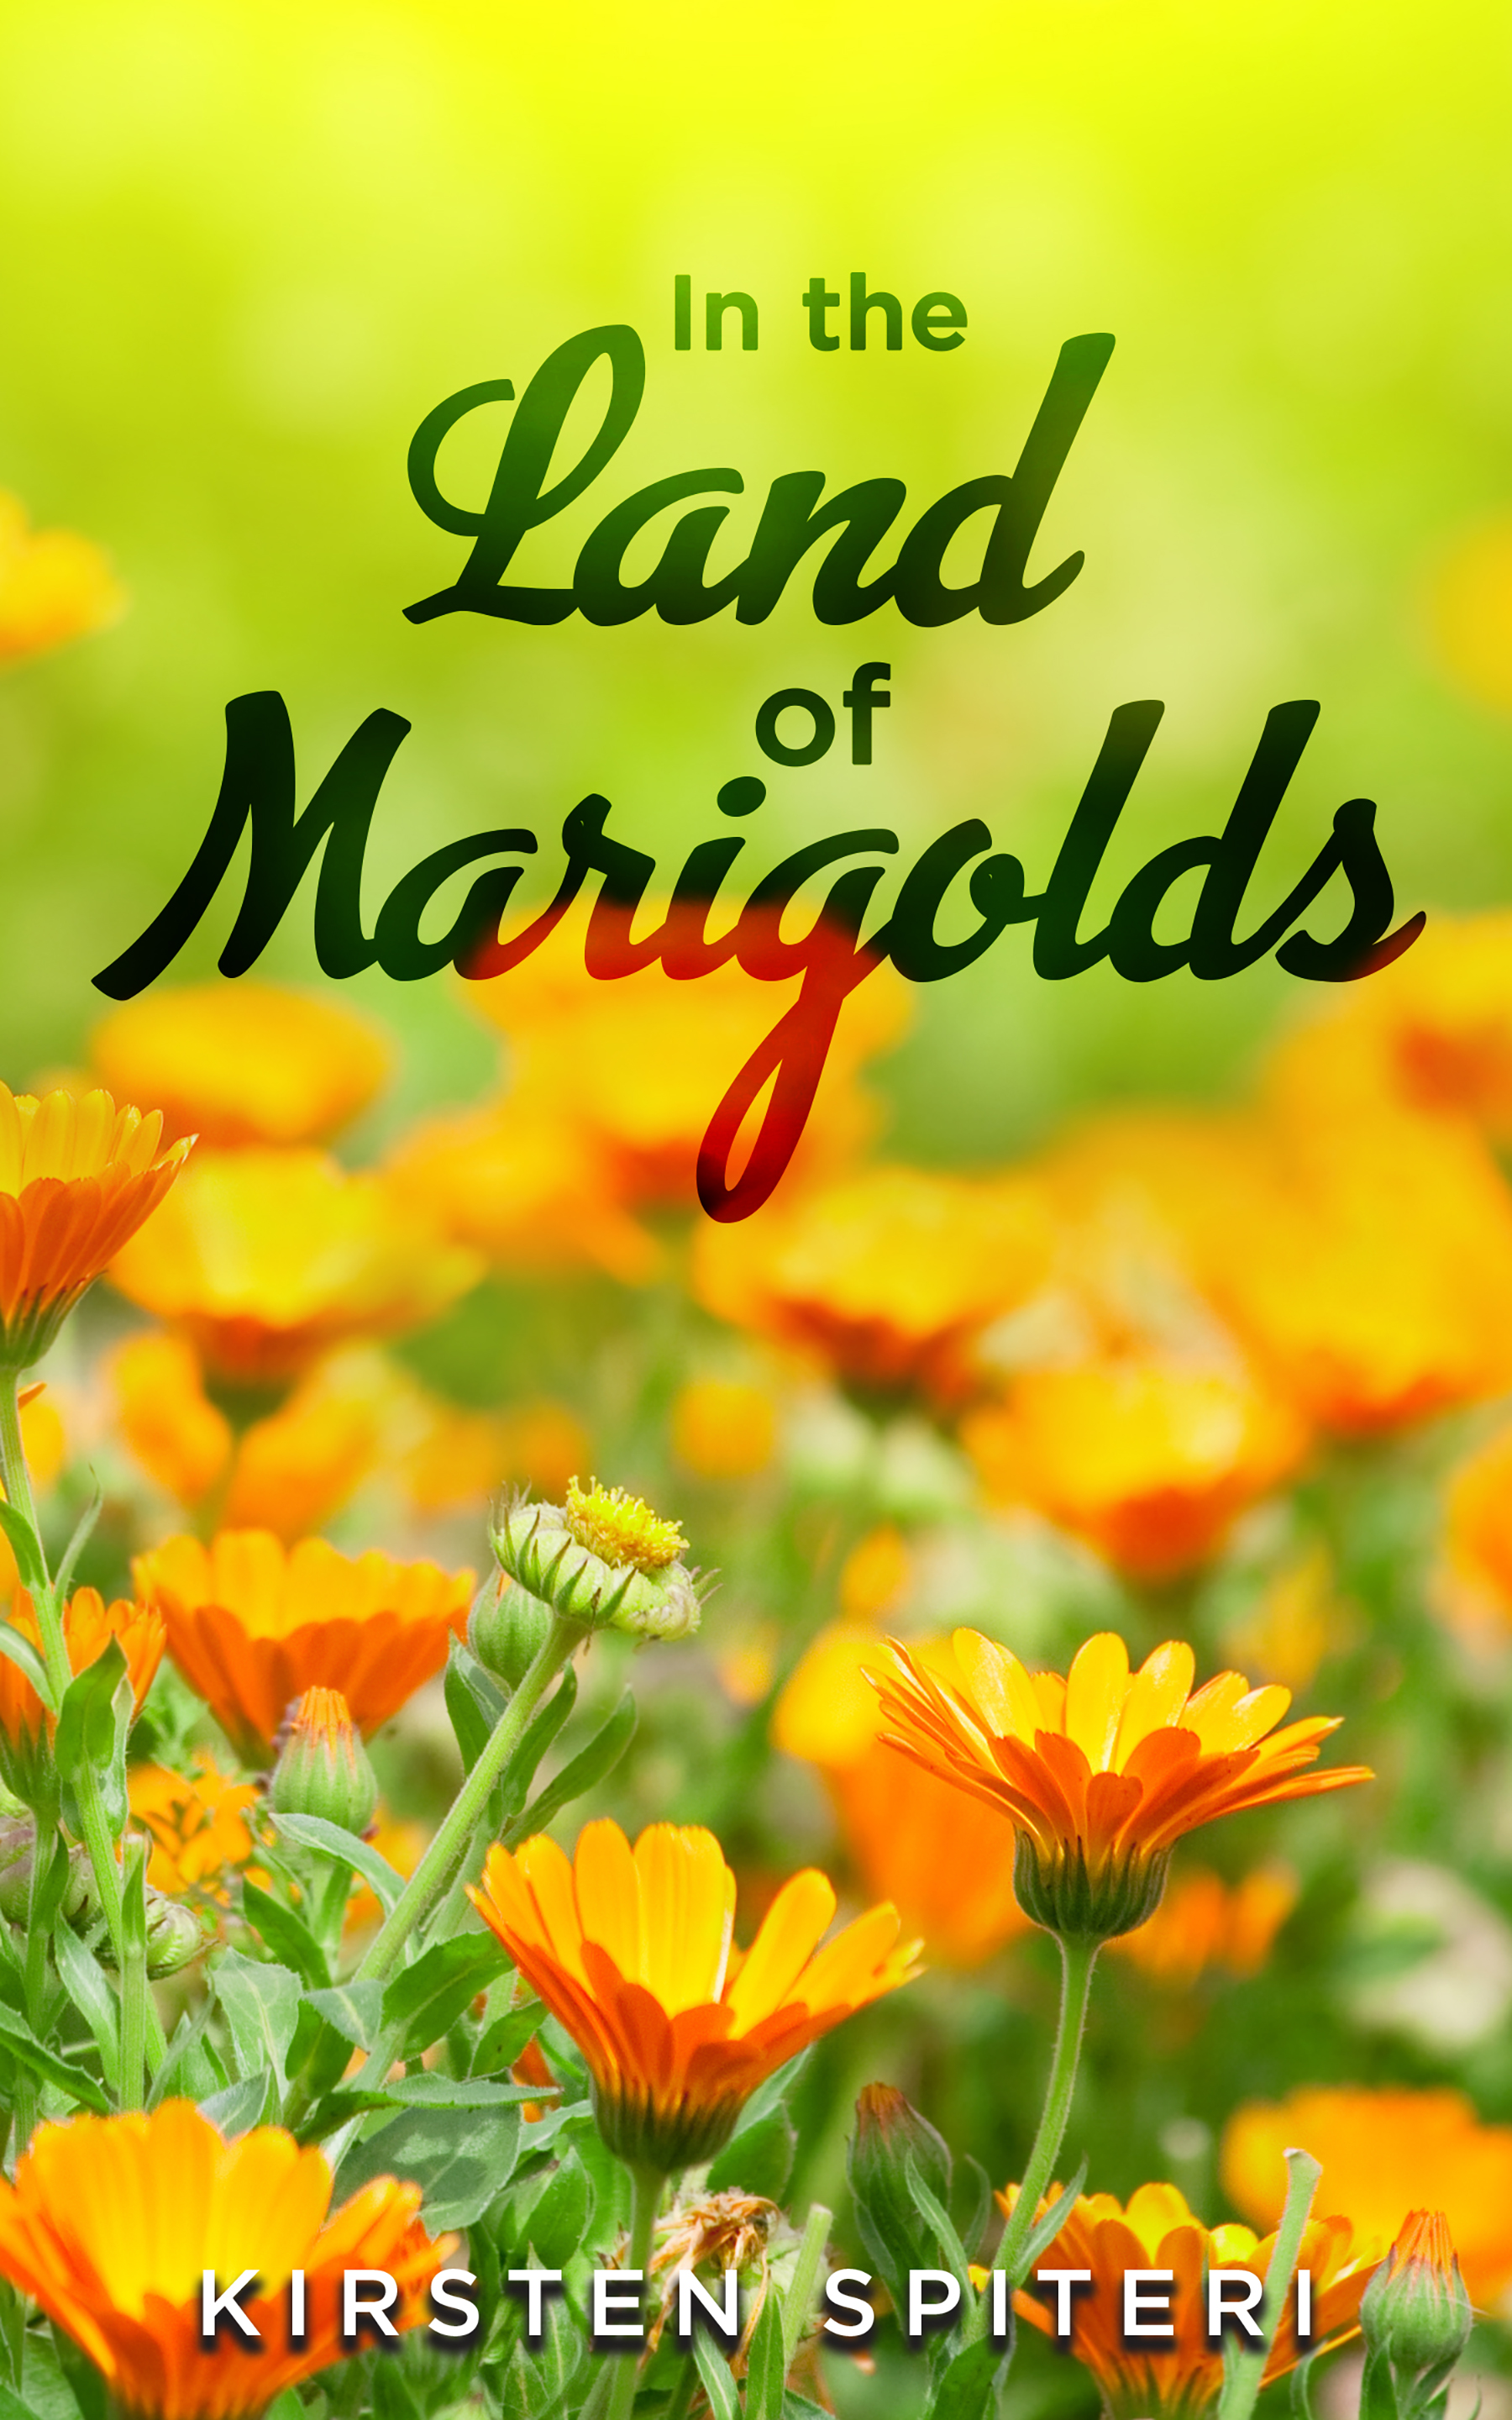 The Land of the Marigolds